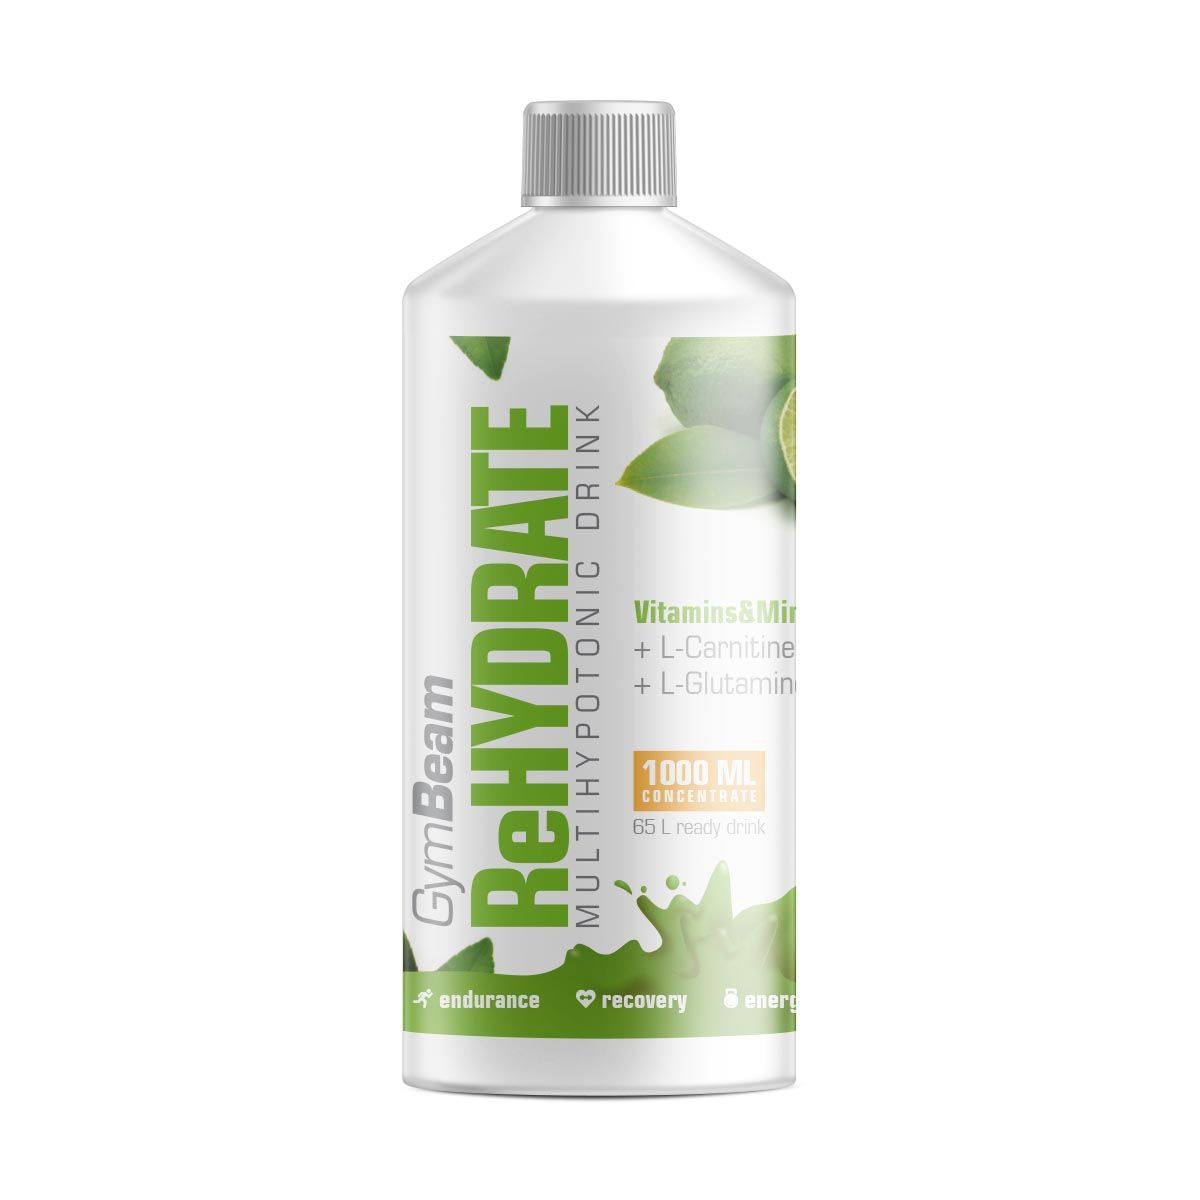 GymBeam ReHydrate 1000 ml - lemon lime